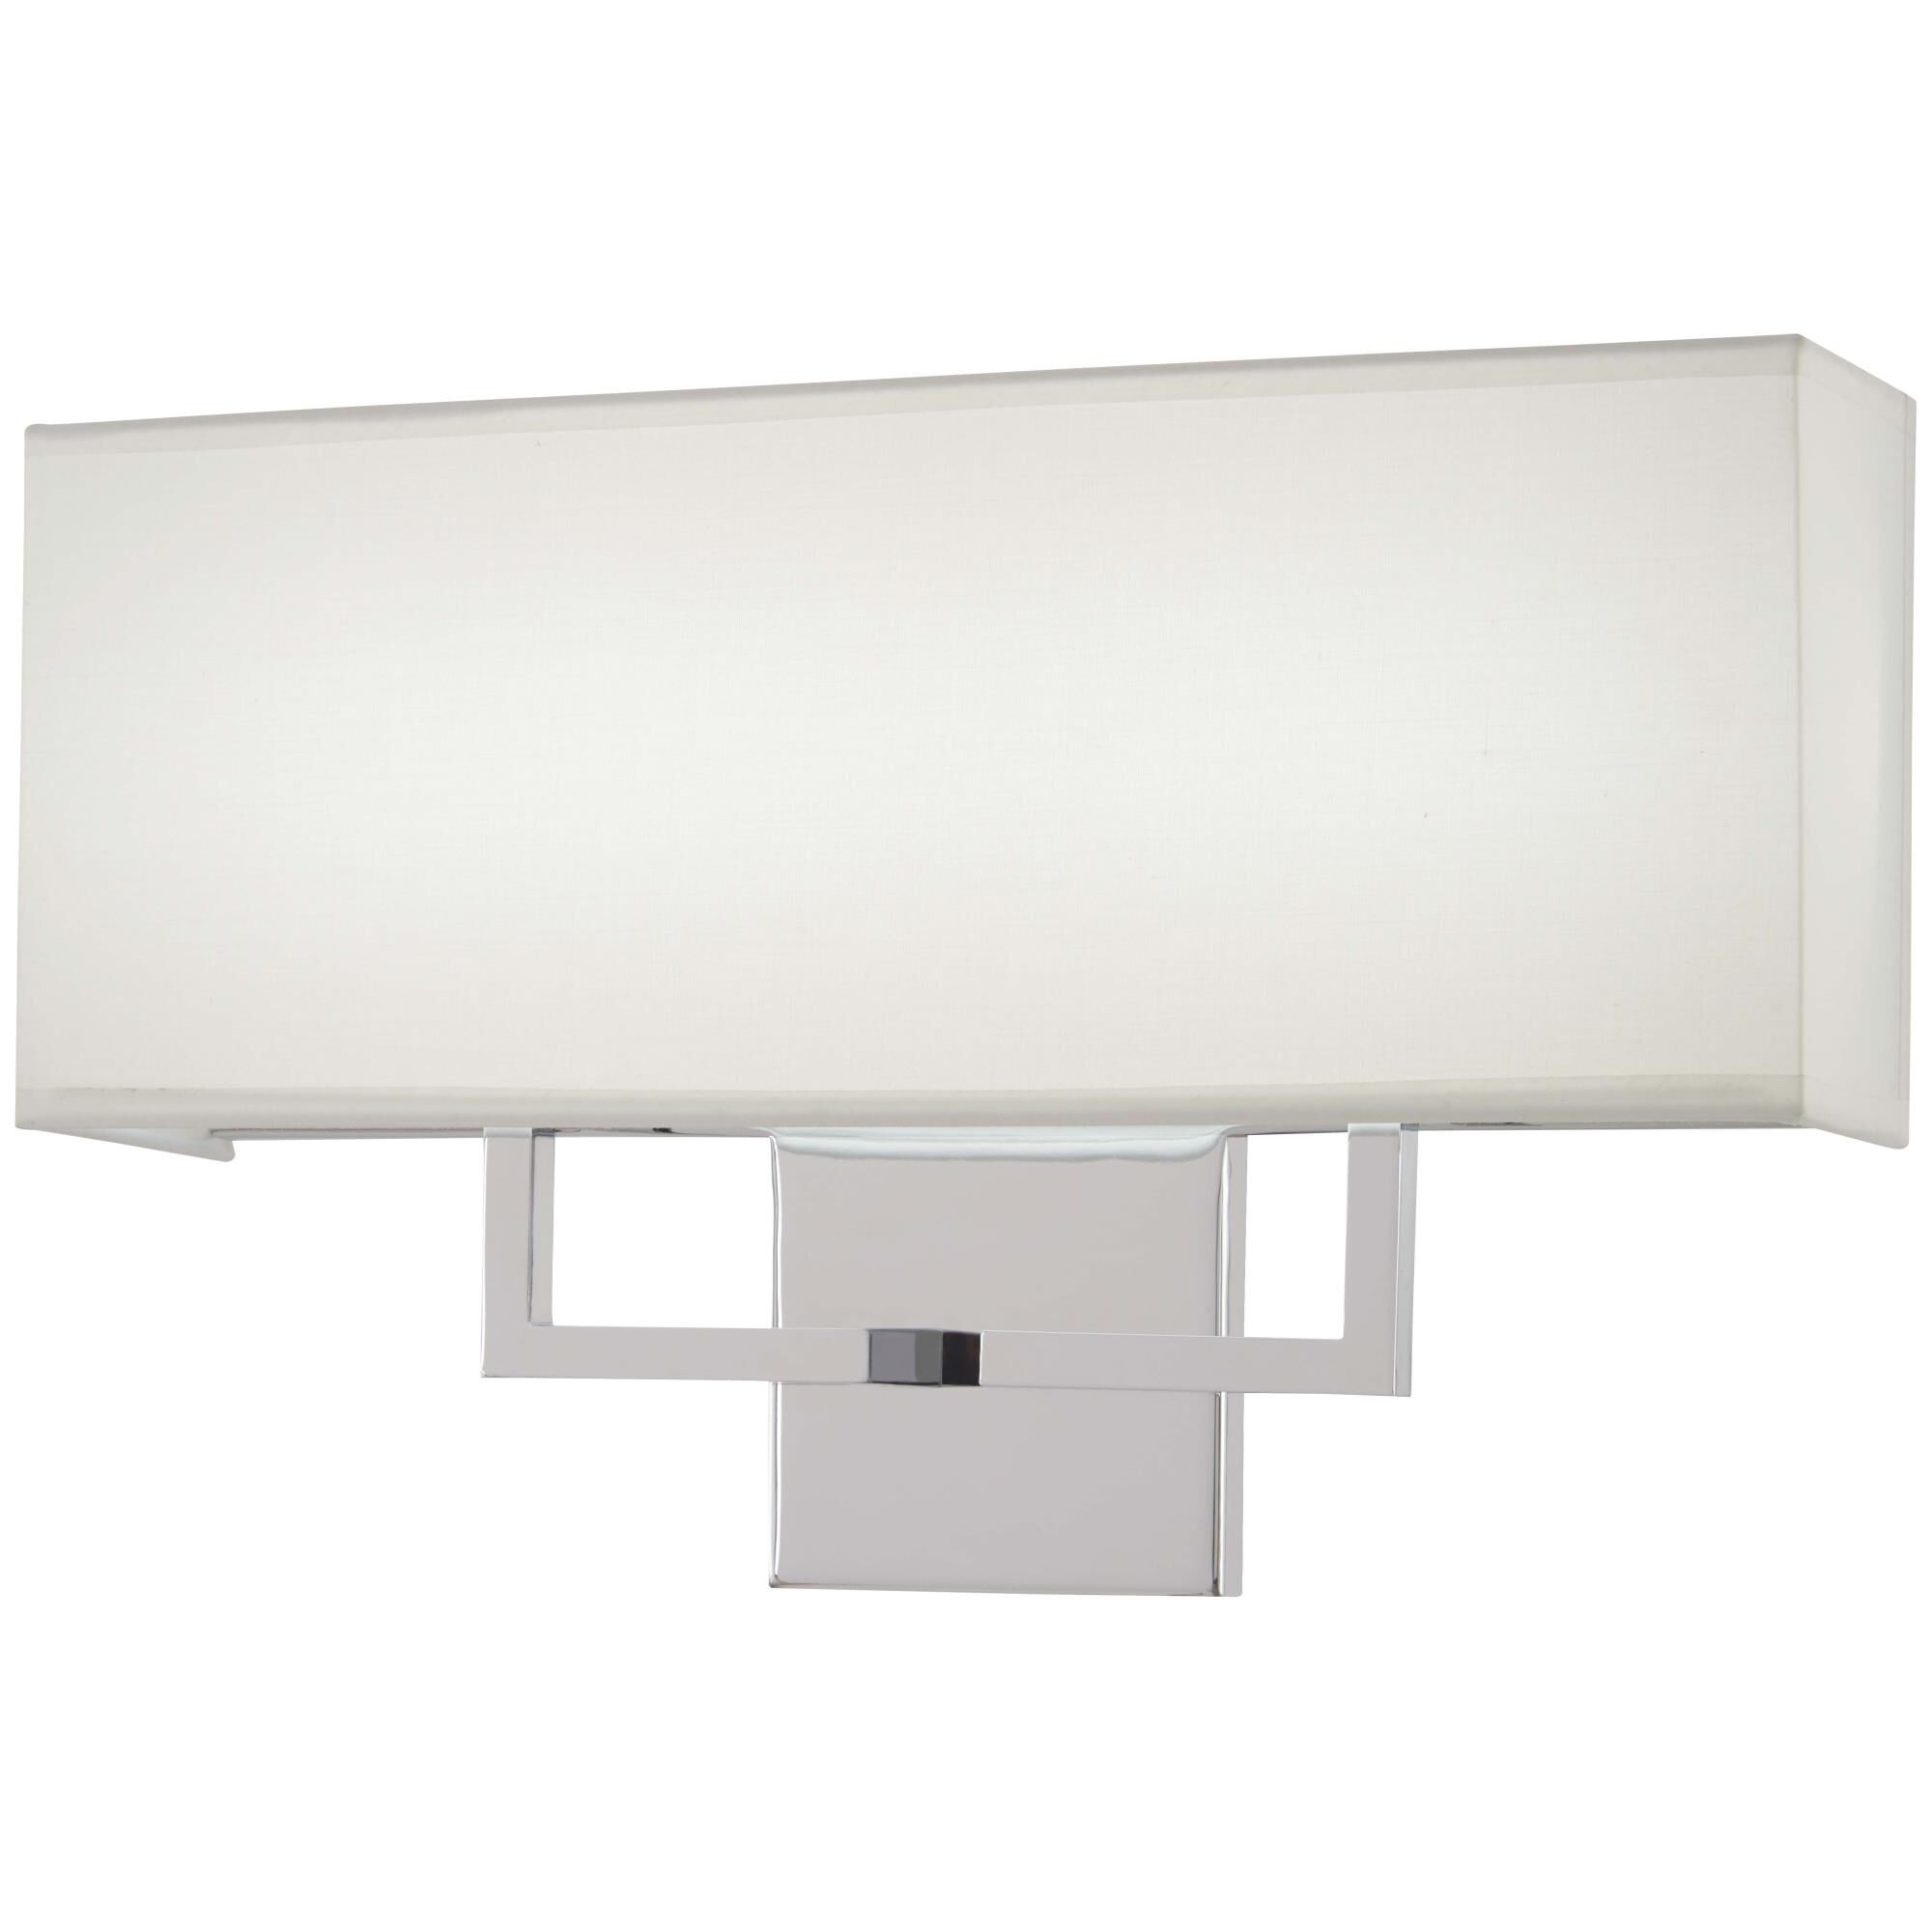 Kovacs 16 Inch Wall Sconce - P472-077-l - Transitional